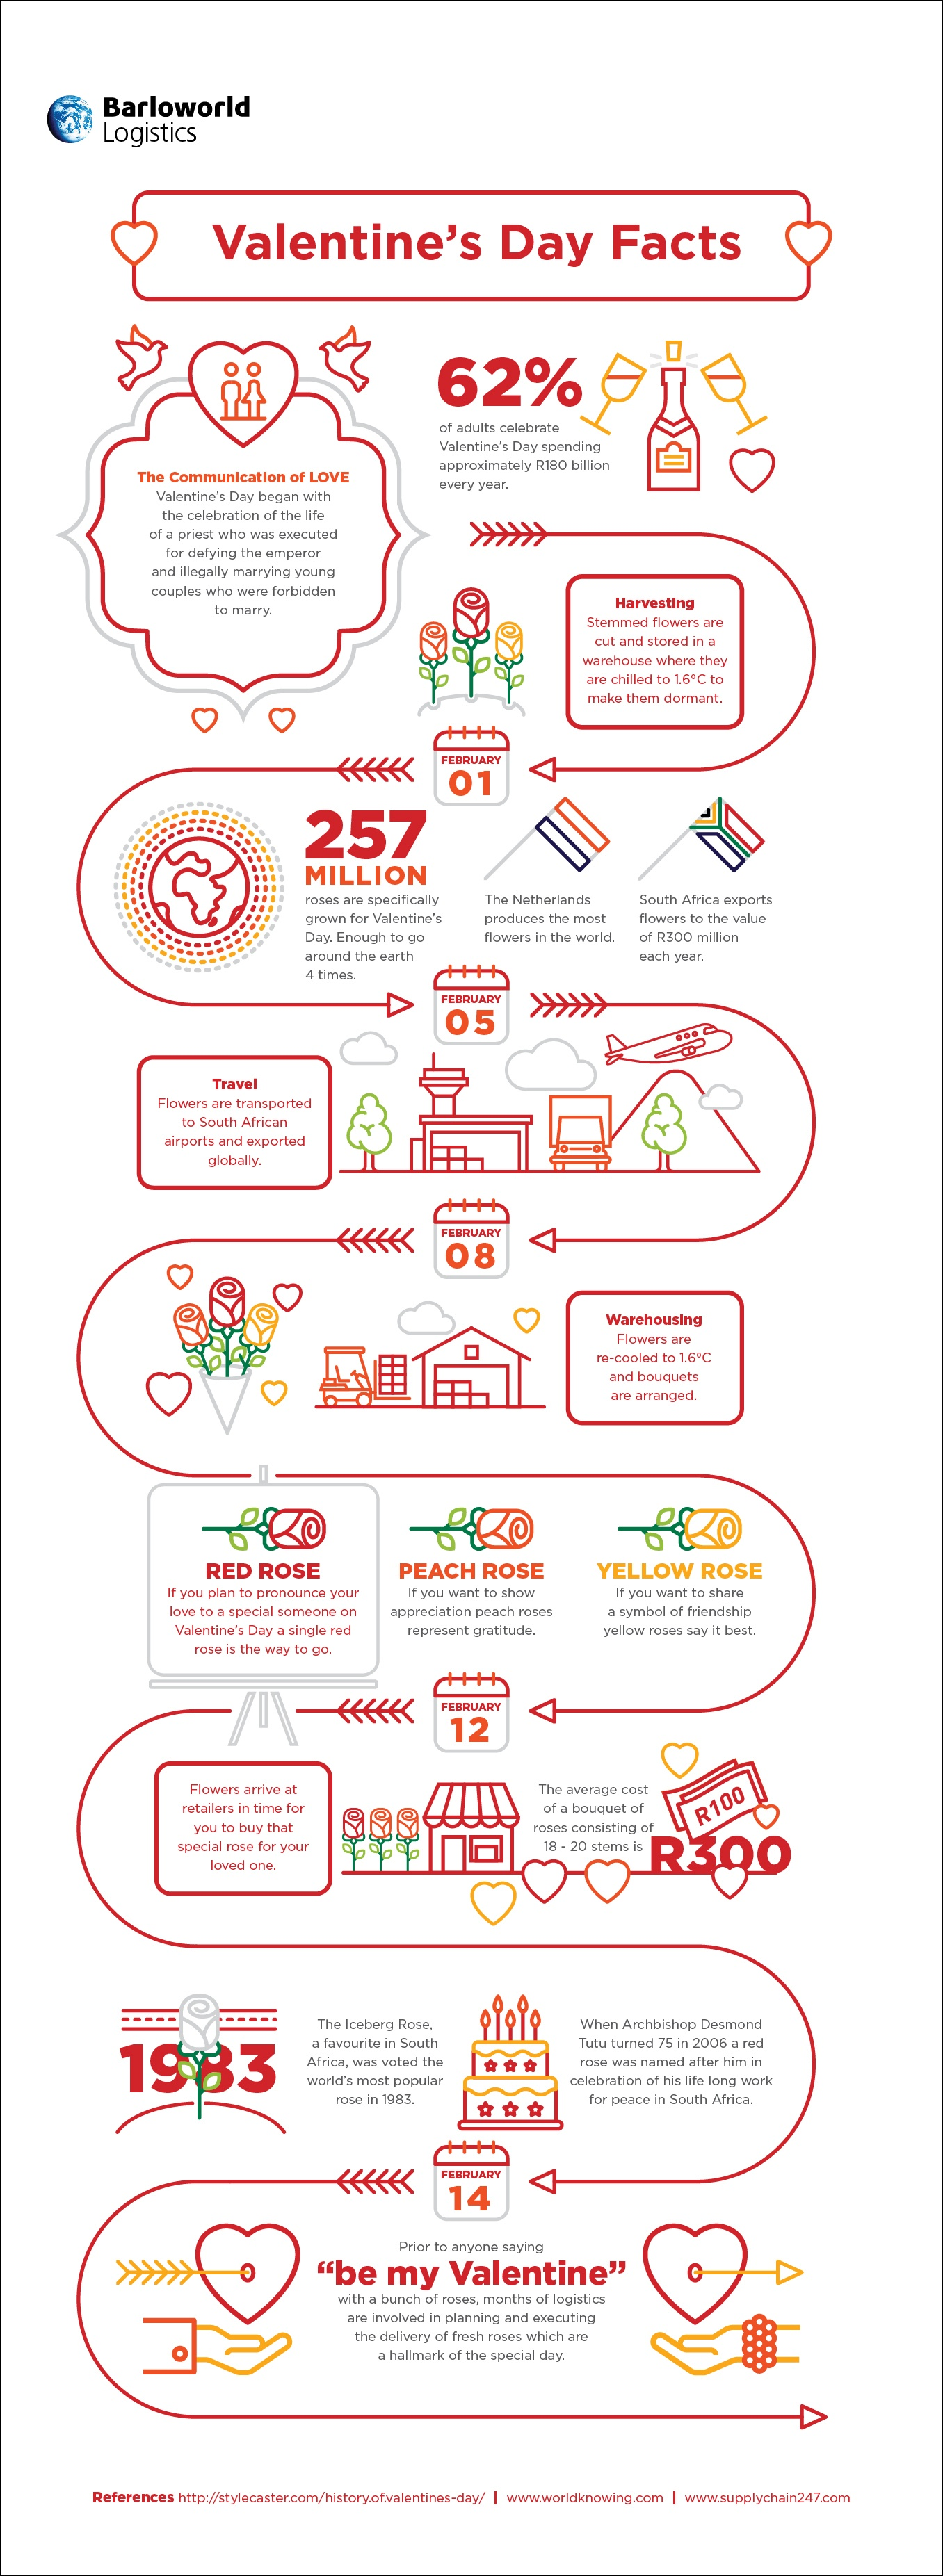 Logistics of life Infographic - Valentine's Day